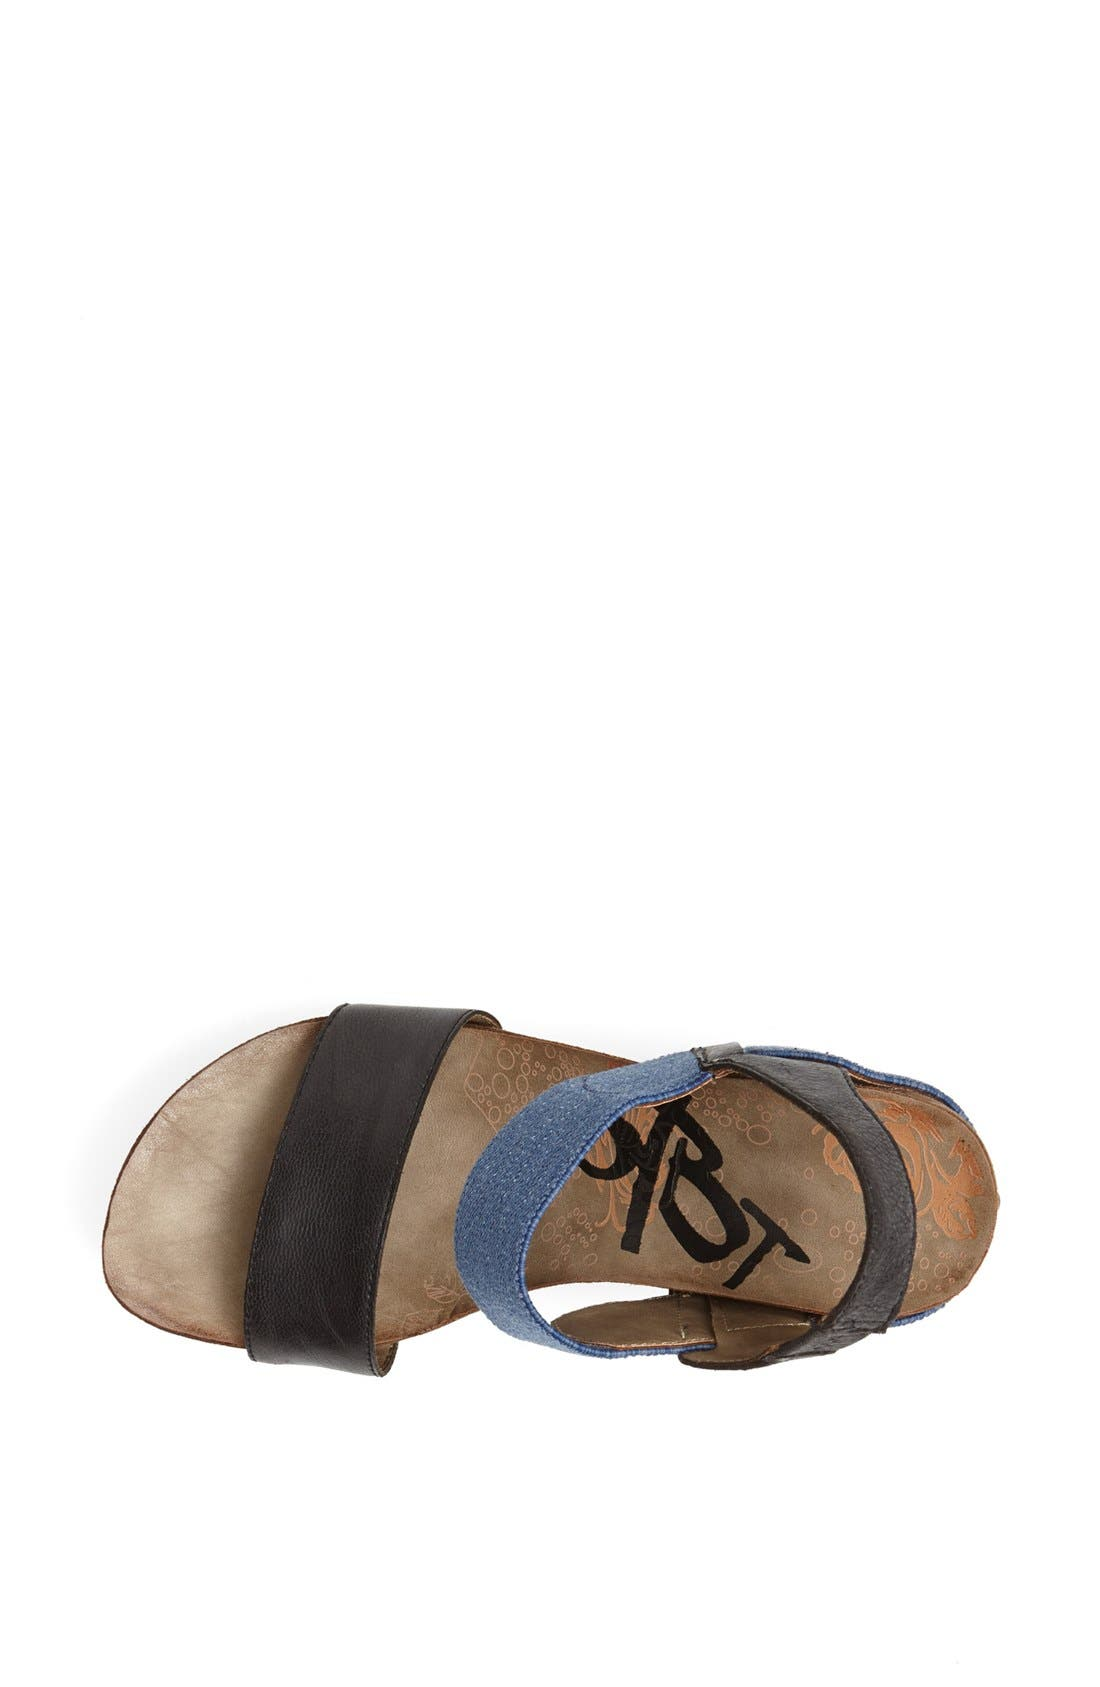 'Bushnell' Wedge Sandal,                             Alternate thumbnail 37, color,